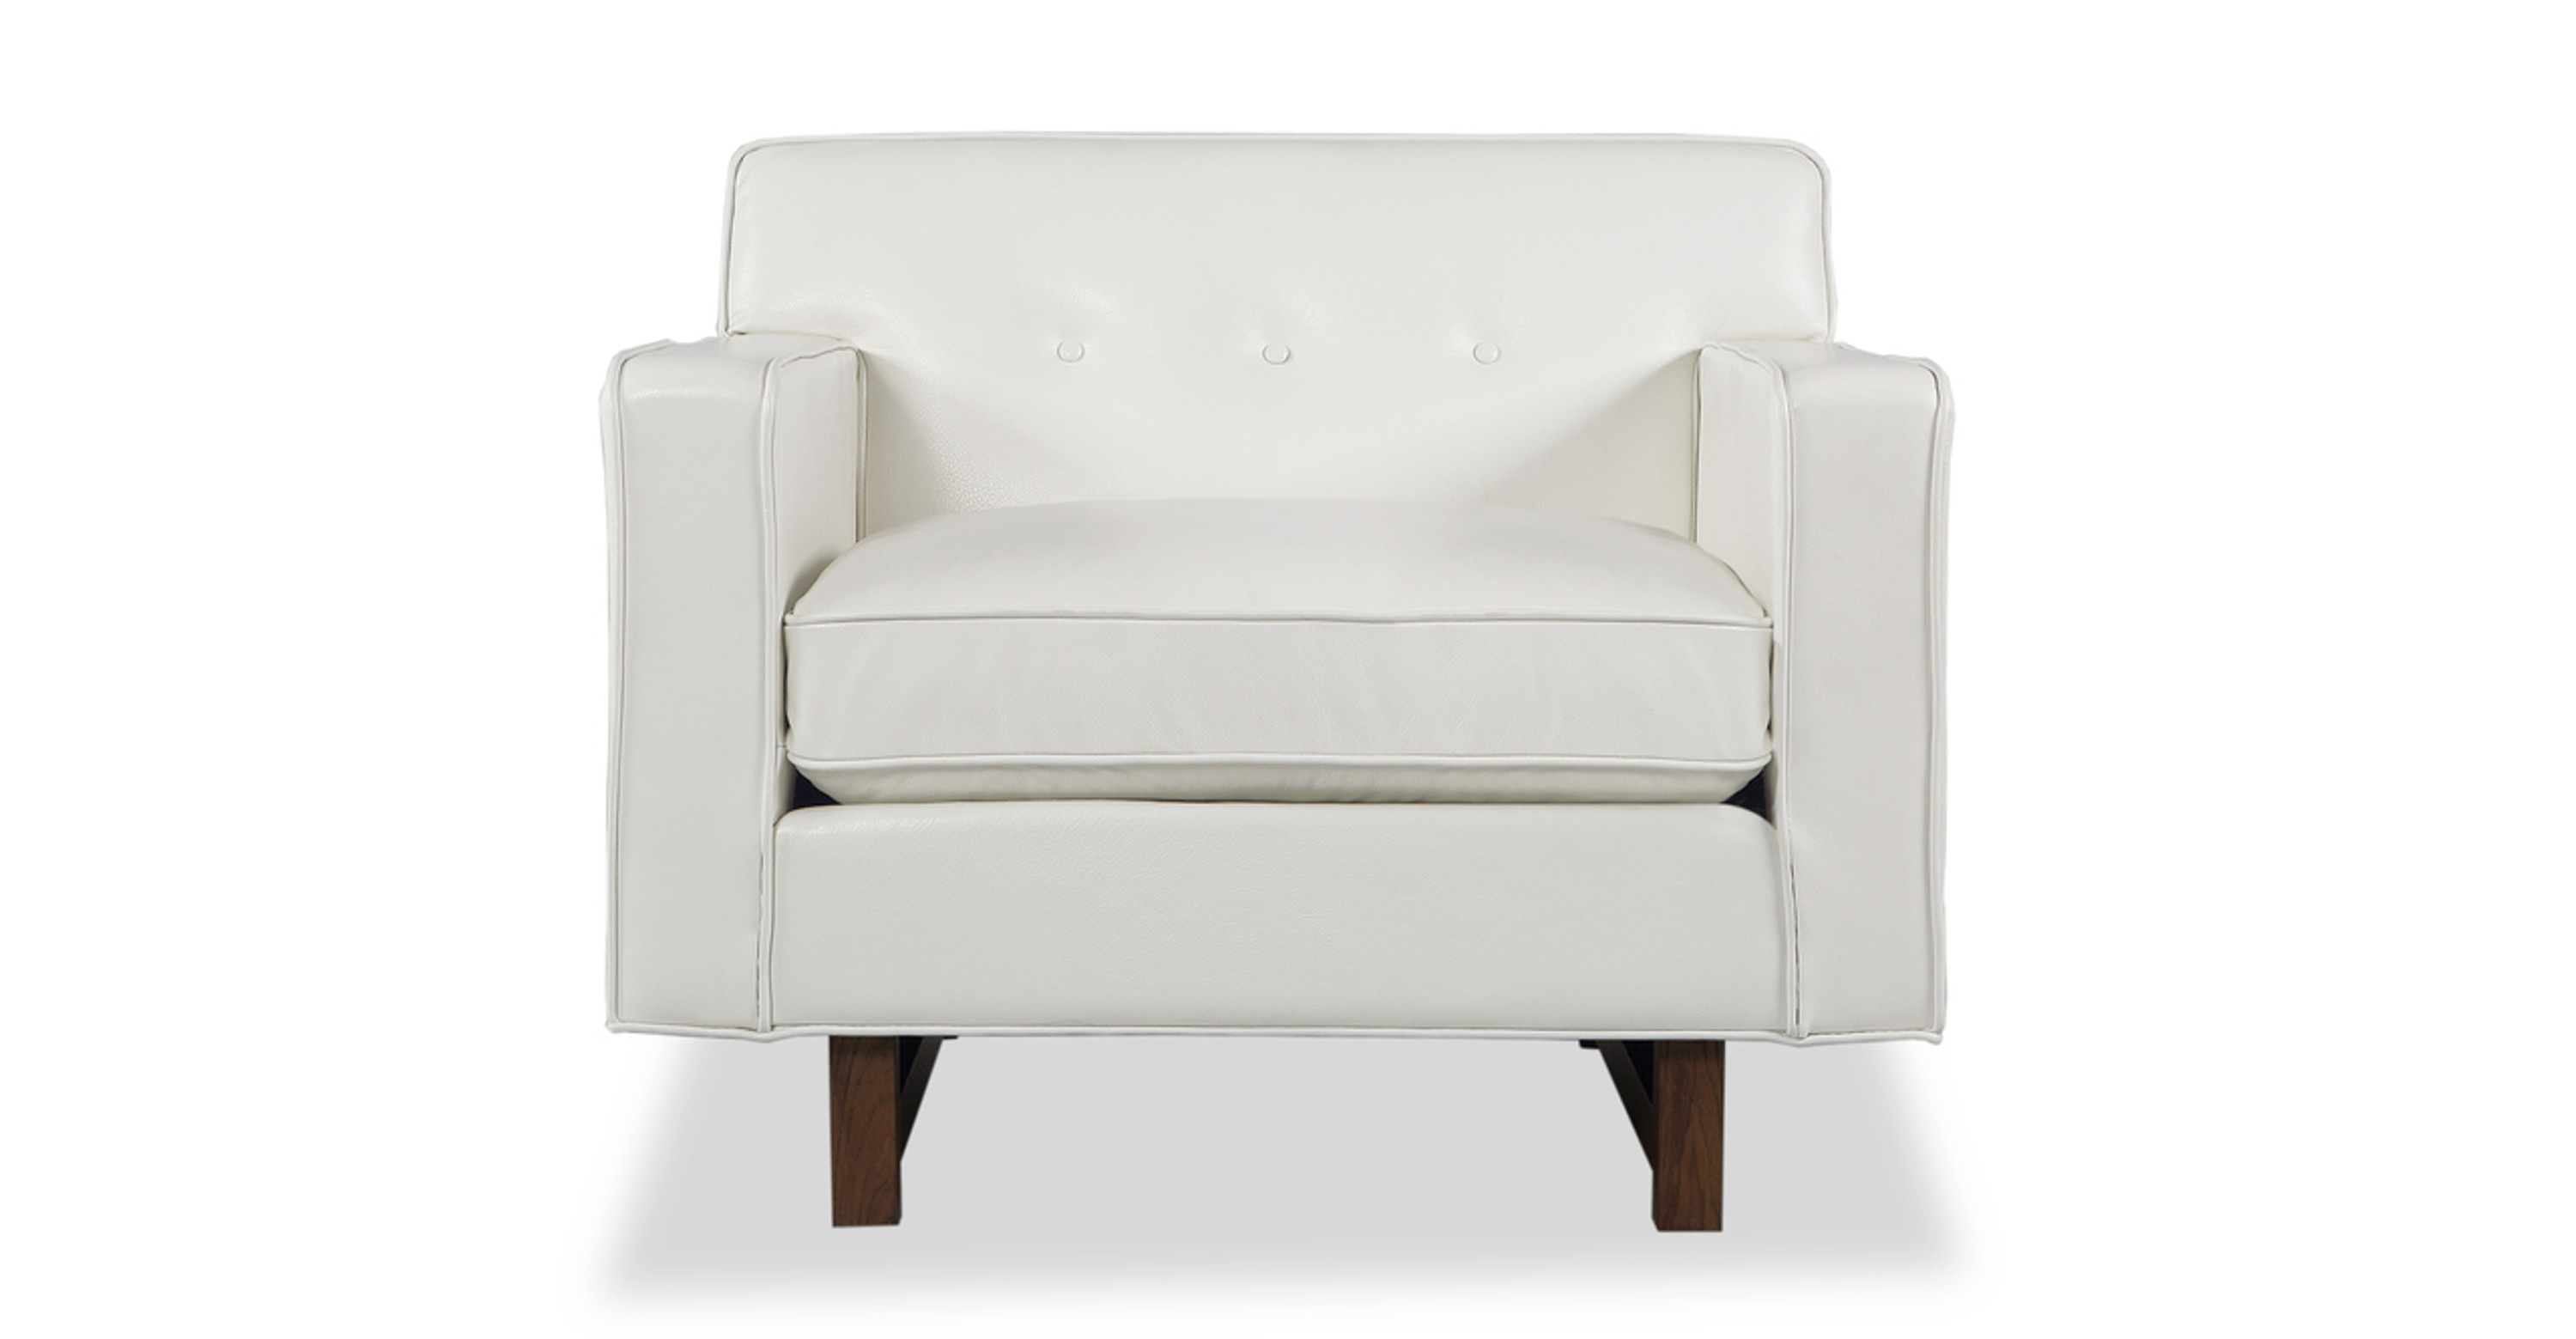 Marvelous Kennedy Chair White Aniline Leather Caraccident5 Cool Chair Designs And Ideas Caraccident5Info